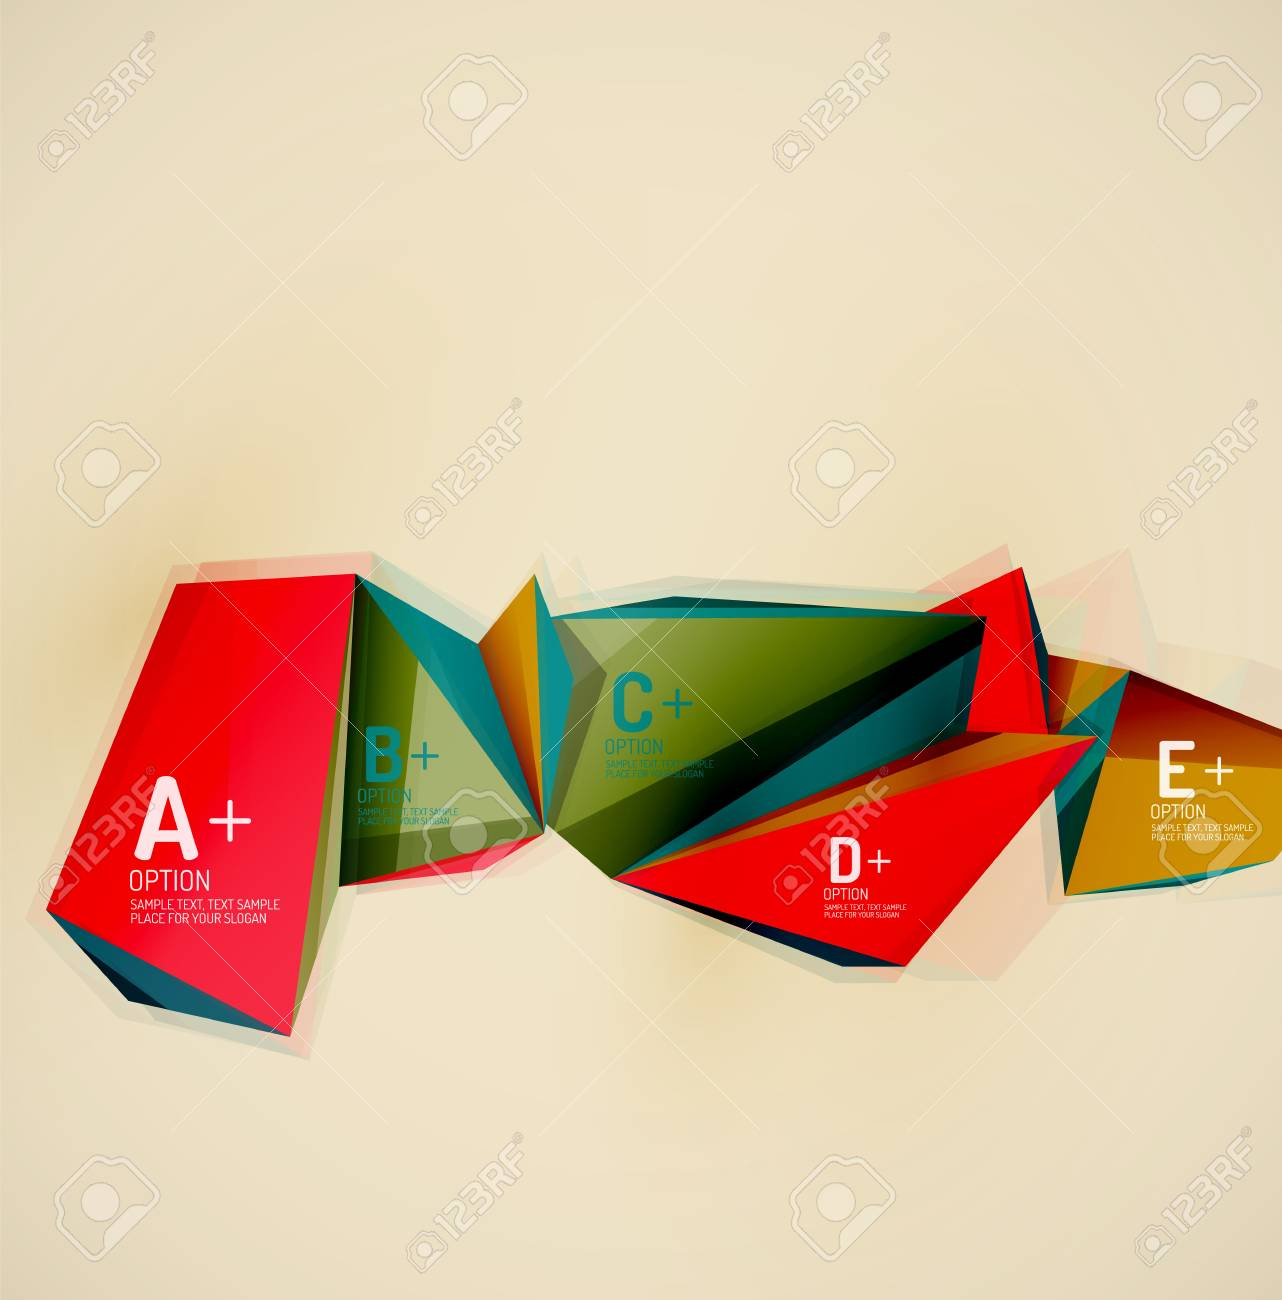 3d geometric shapes in the air  Vector abstract background  Business